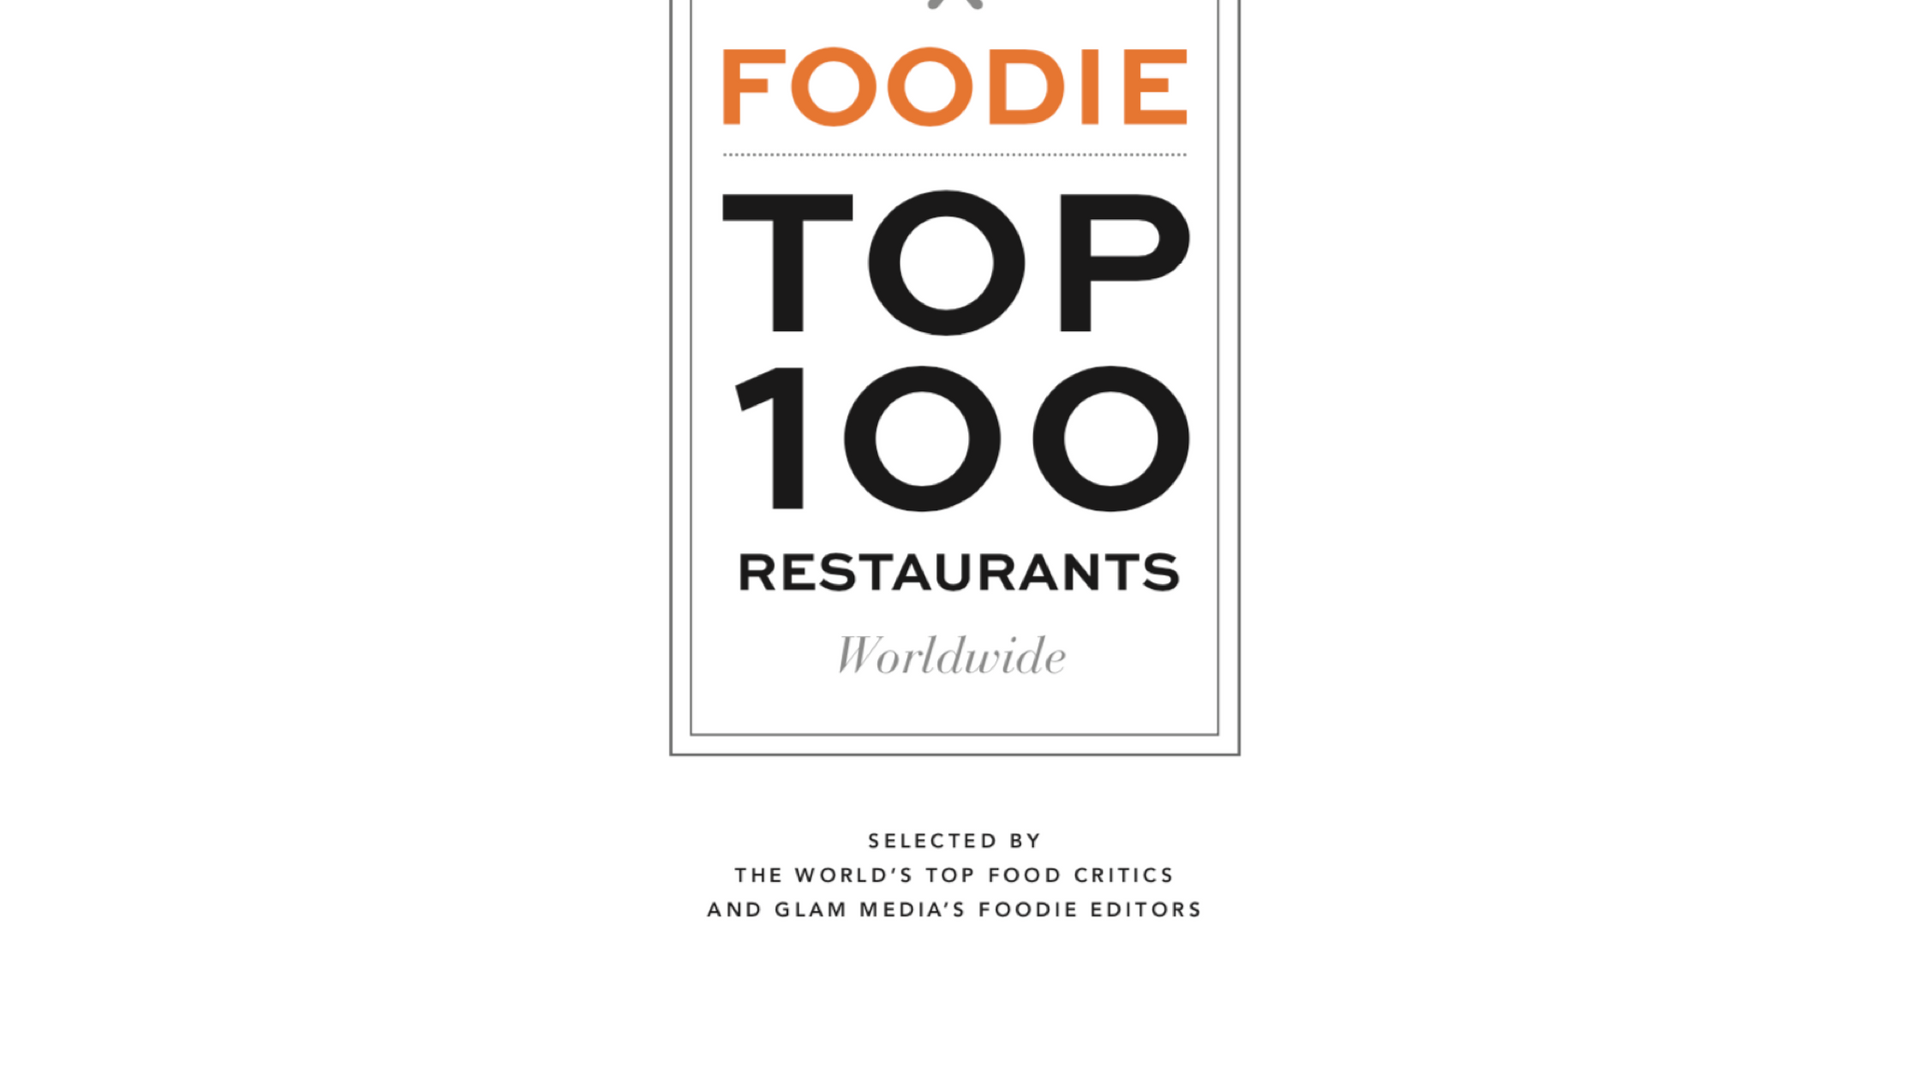 Foodie Top 100 Restaurants Worldwide.png